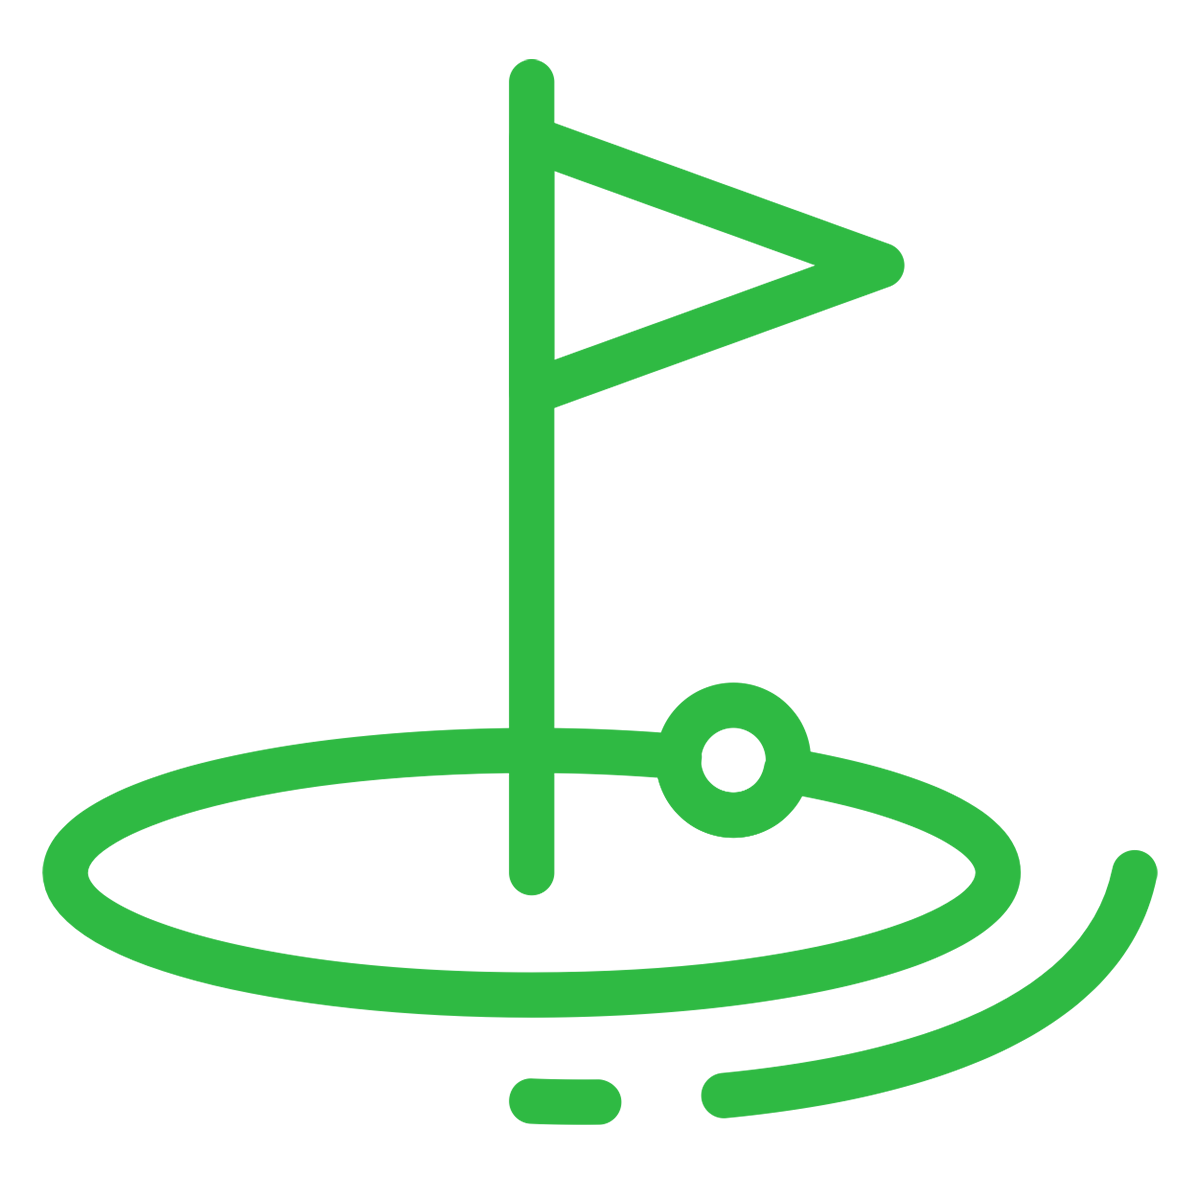 golf flag icon green.png